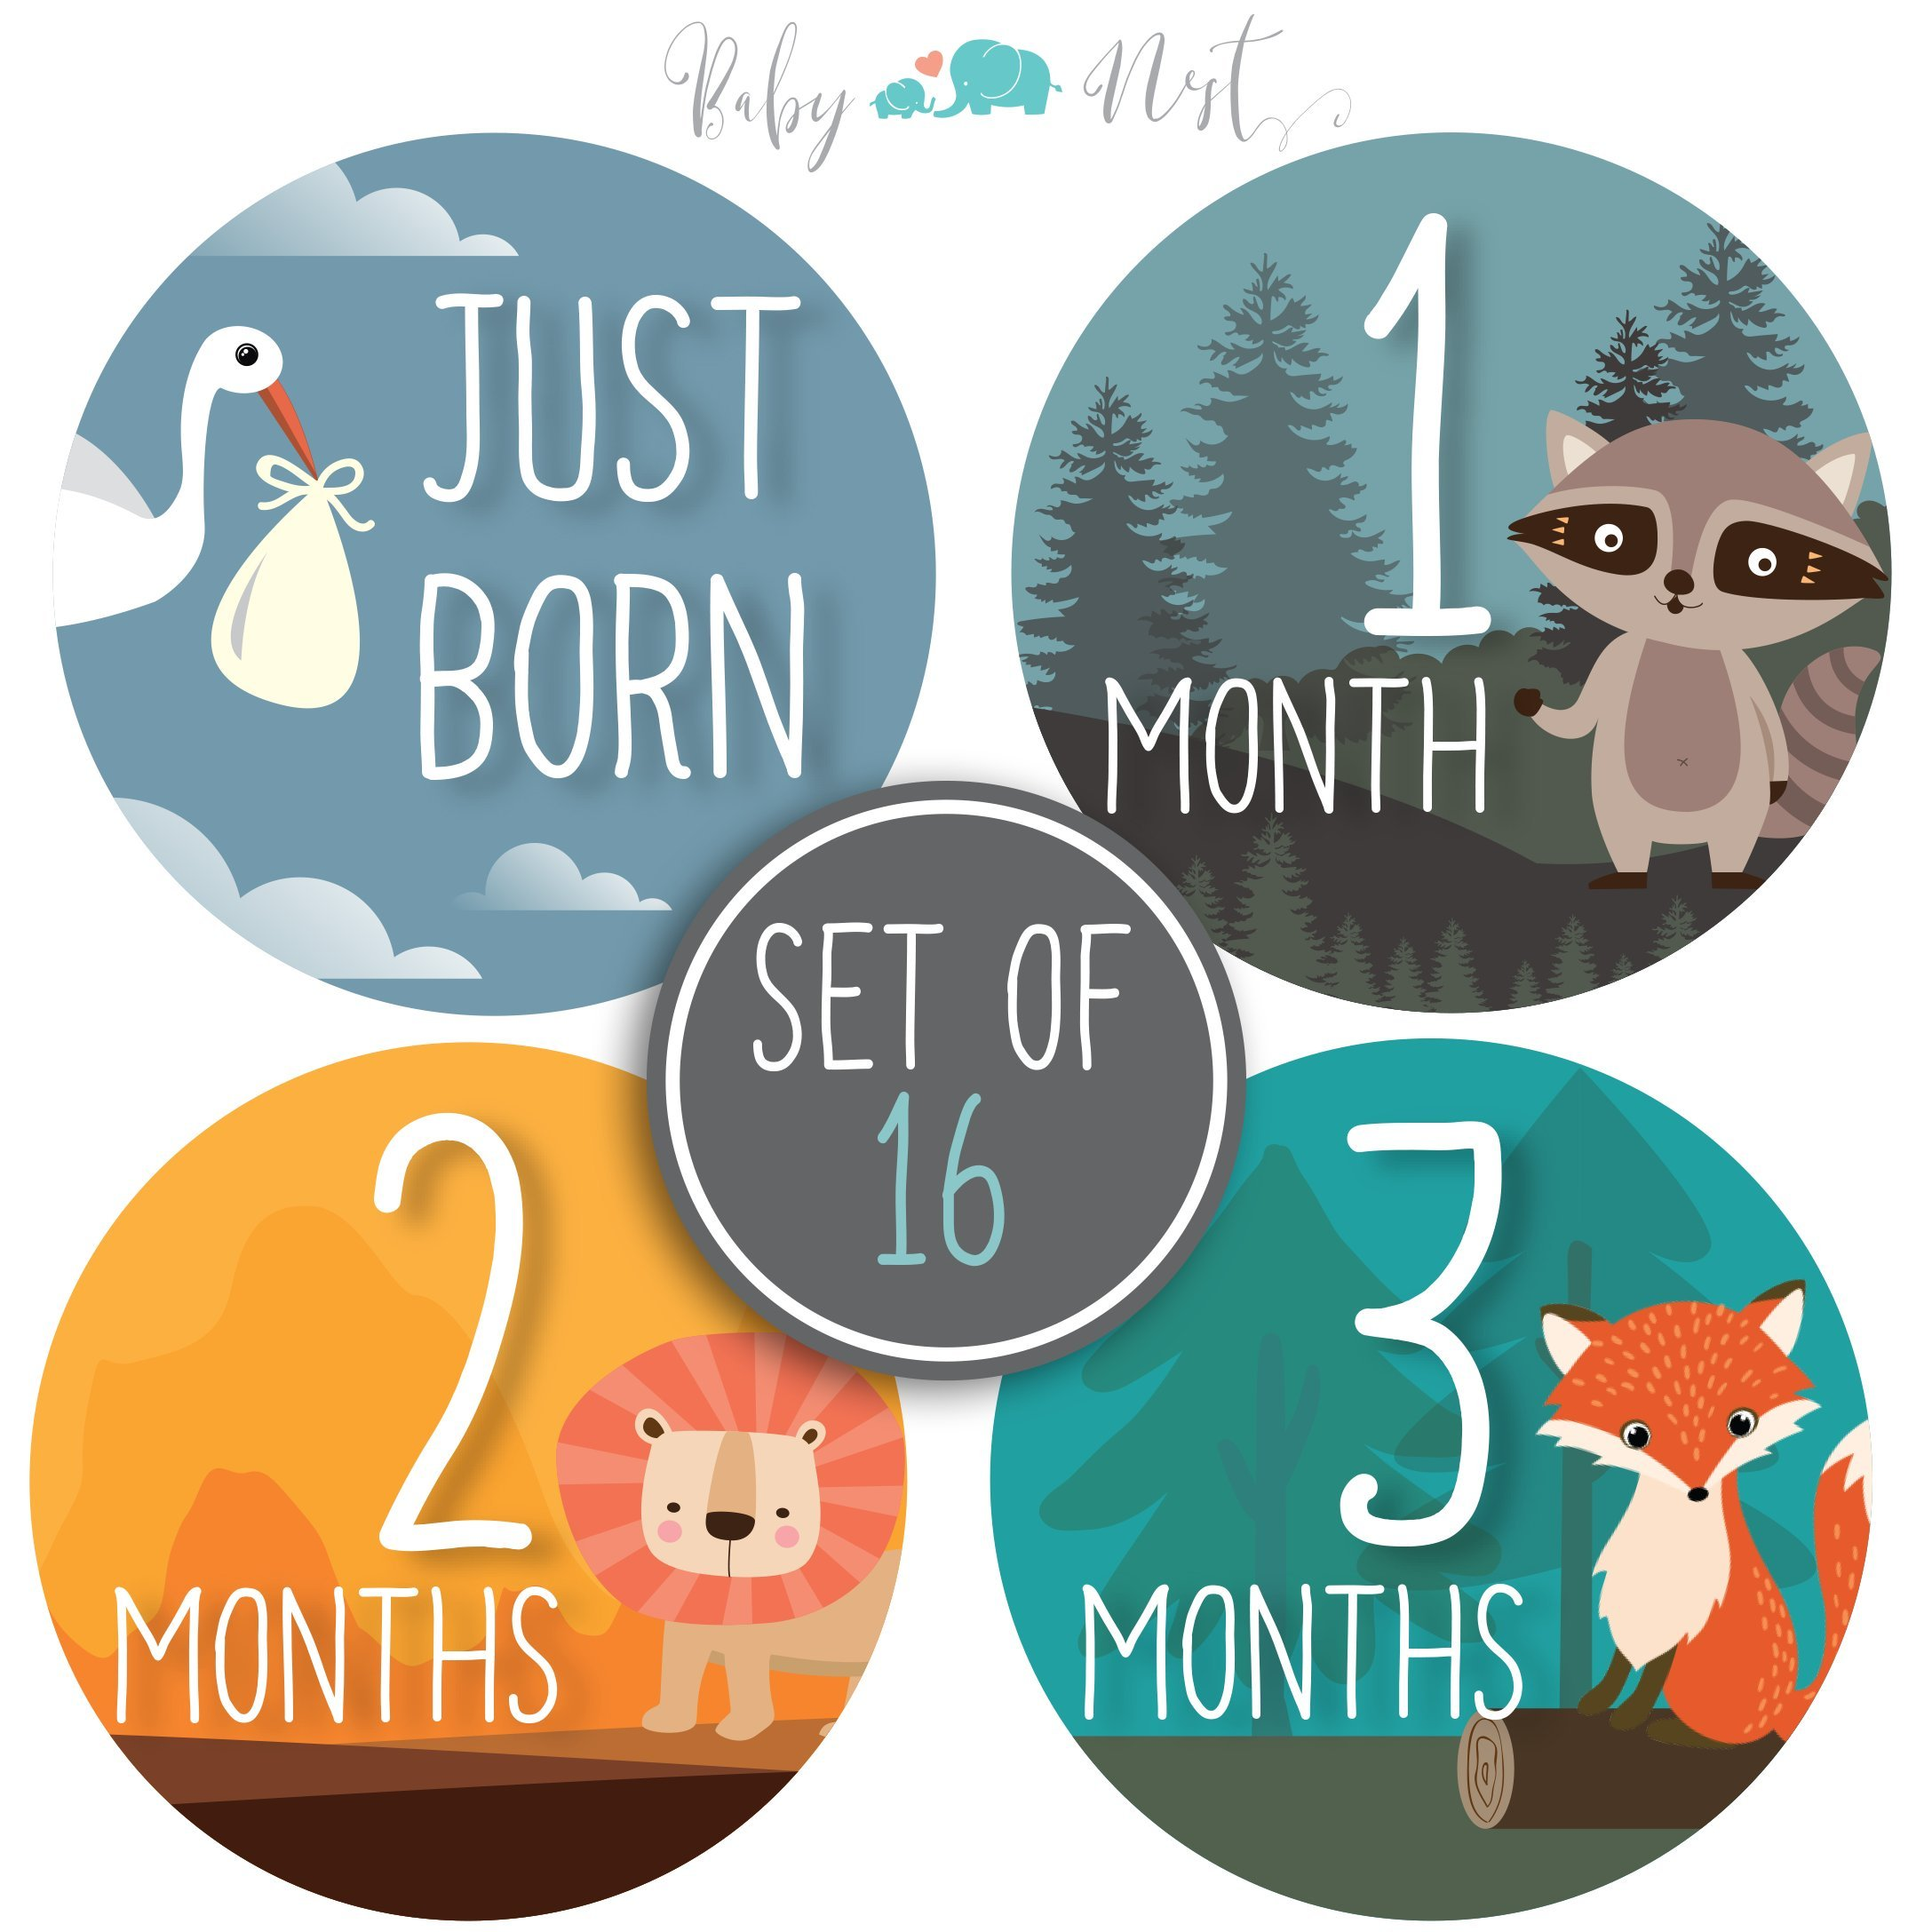 Baby Monthly Milestone Stickers - Set of 16 Uniquely Designed Woodland Animals for Boys or Girls First Year - Great for Baby Shower Registry and Photo Memories Keepsake